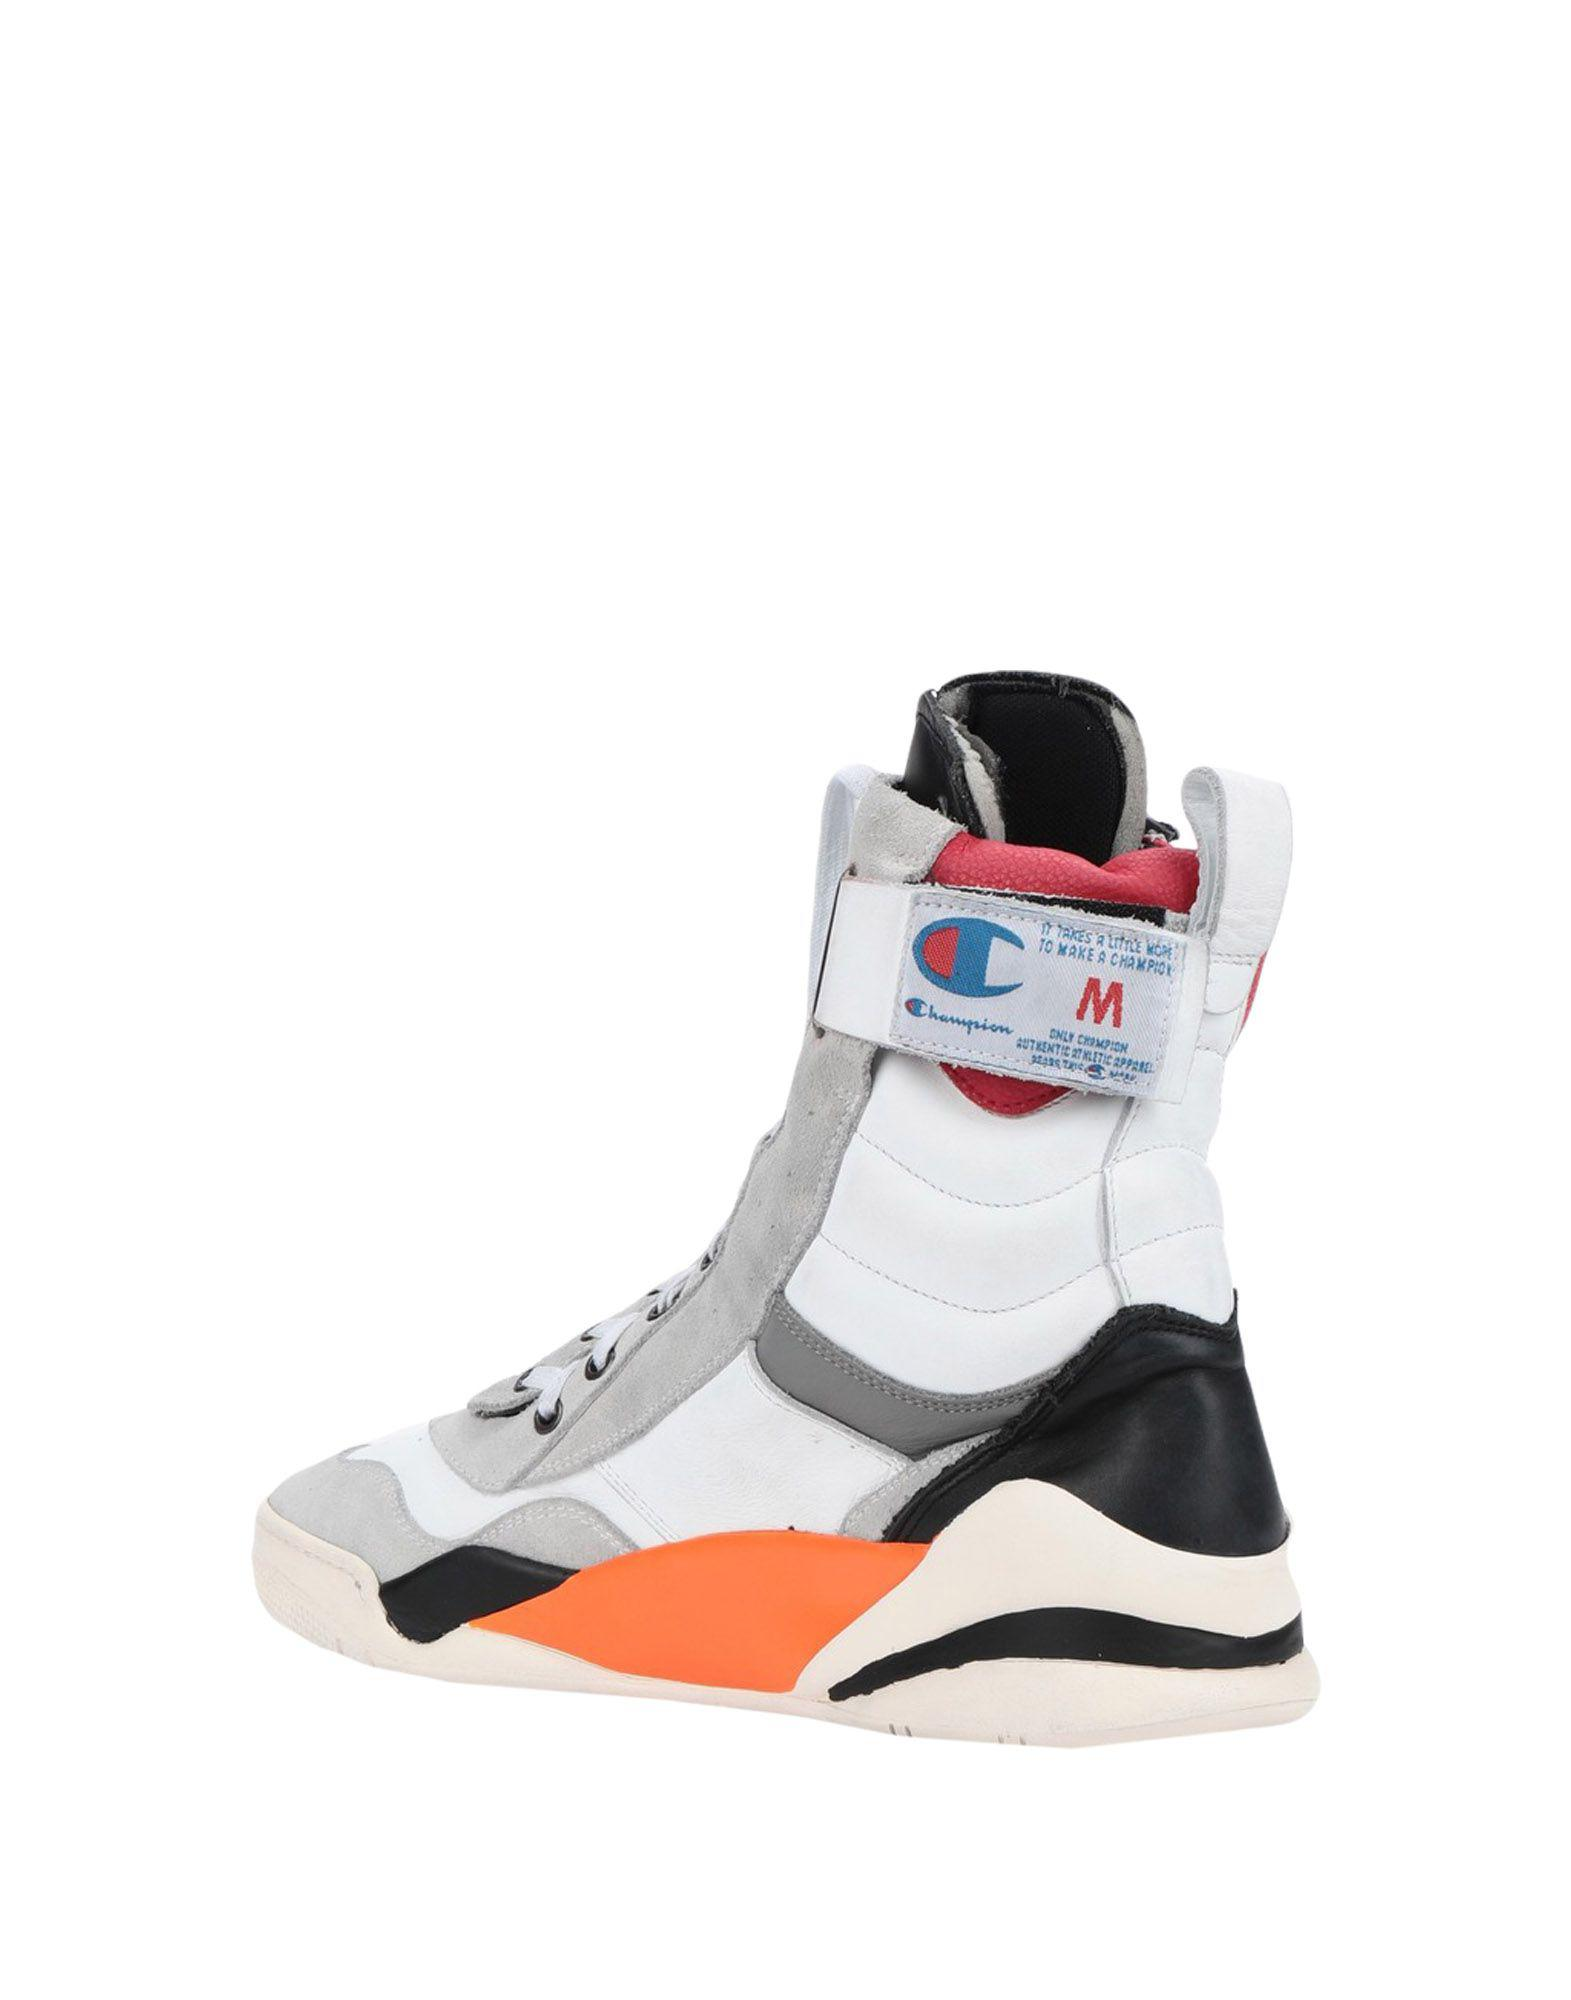 900c9b2dc15 Lyst - Champion High-tops   Sneakers in Gray for Men